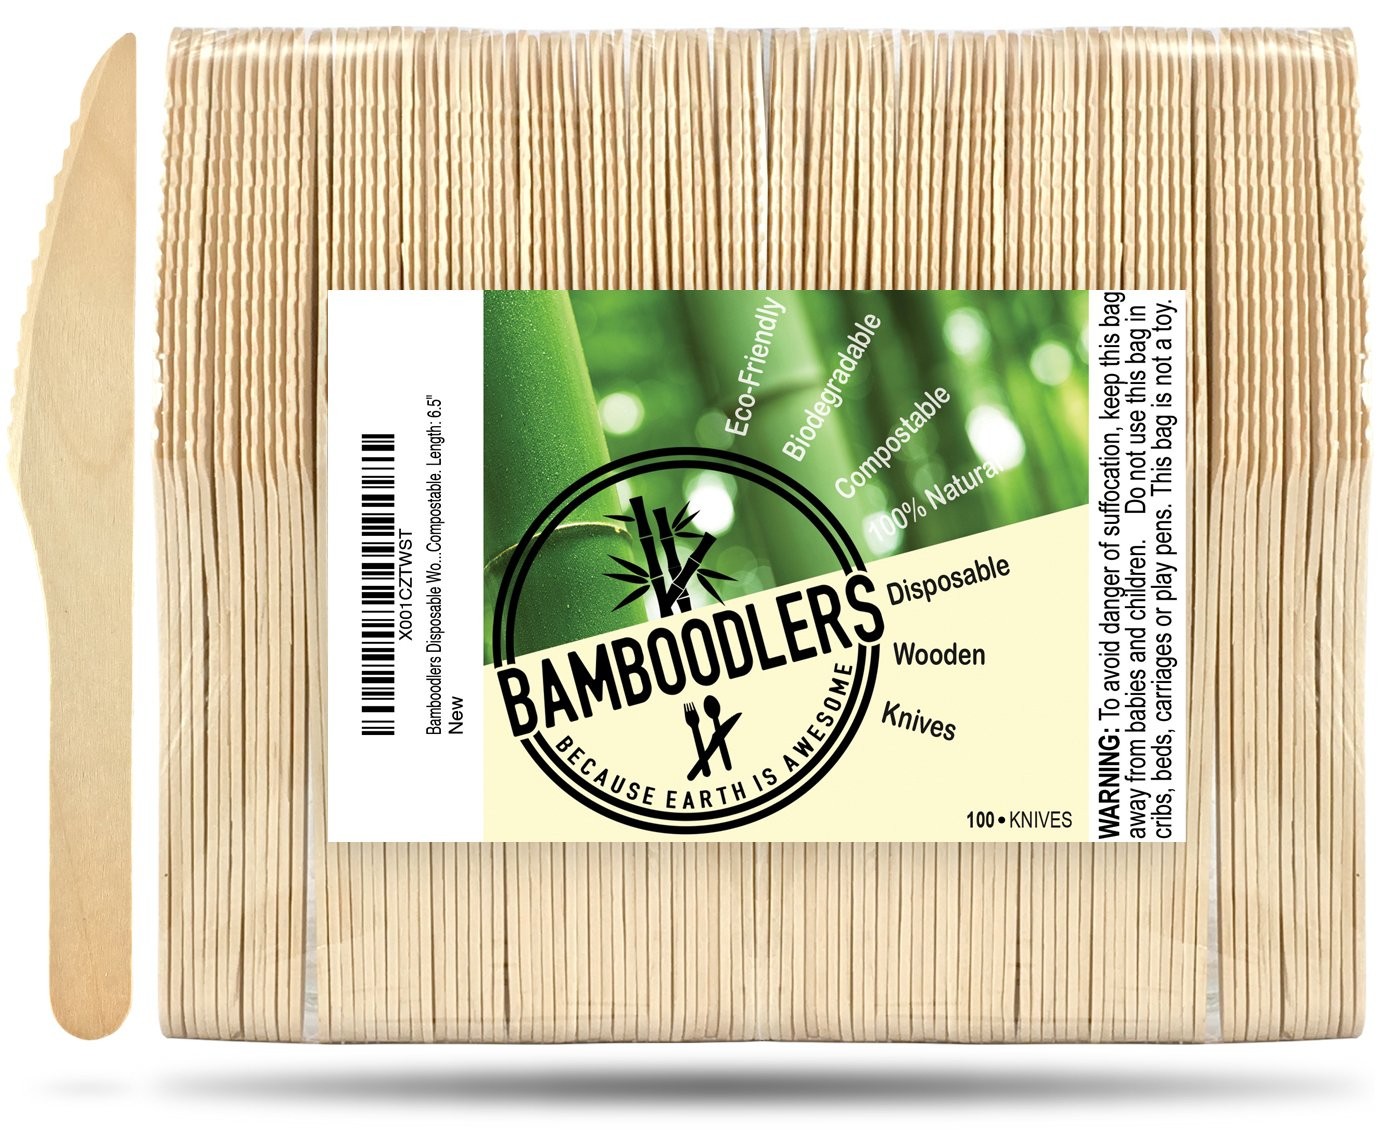 """Disposable Wooden Knives by Bamboodlers   100% All-Natural, Eco-Friendly, Biodegradable, and Compostable - Because Earth is Awesome! Pack of 100-6.5"""" Knives."""